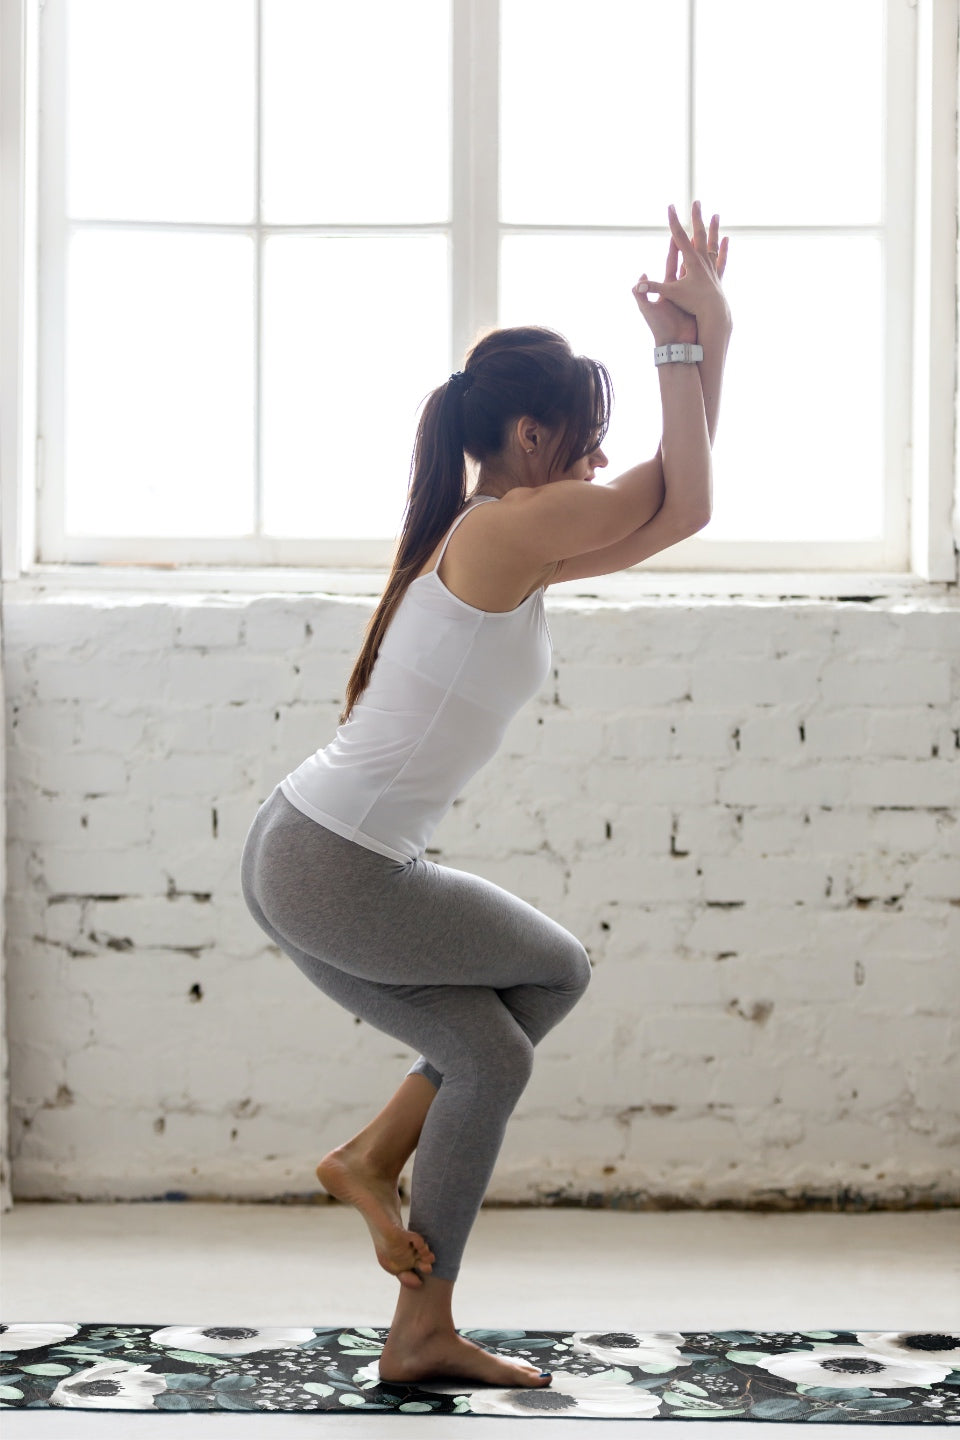 Big Raven Yoga | Mandi's Custom Bridal Machine-Washable Microfiber Suede Yoga Mat